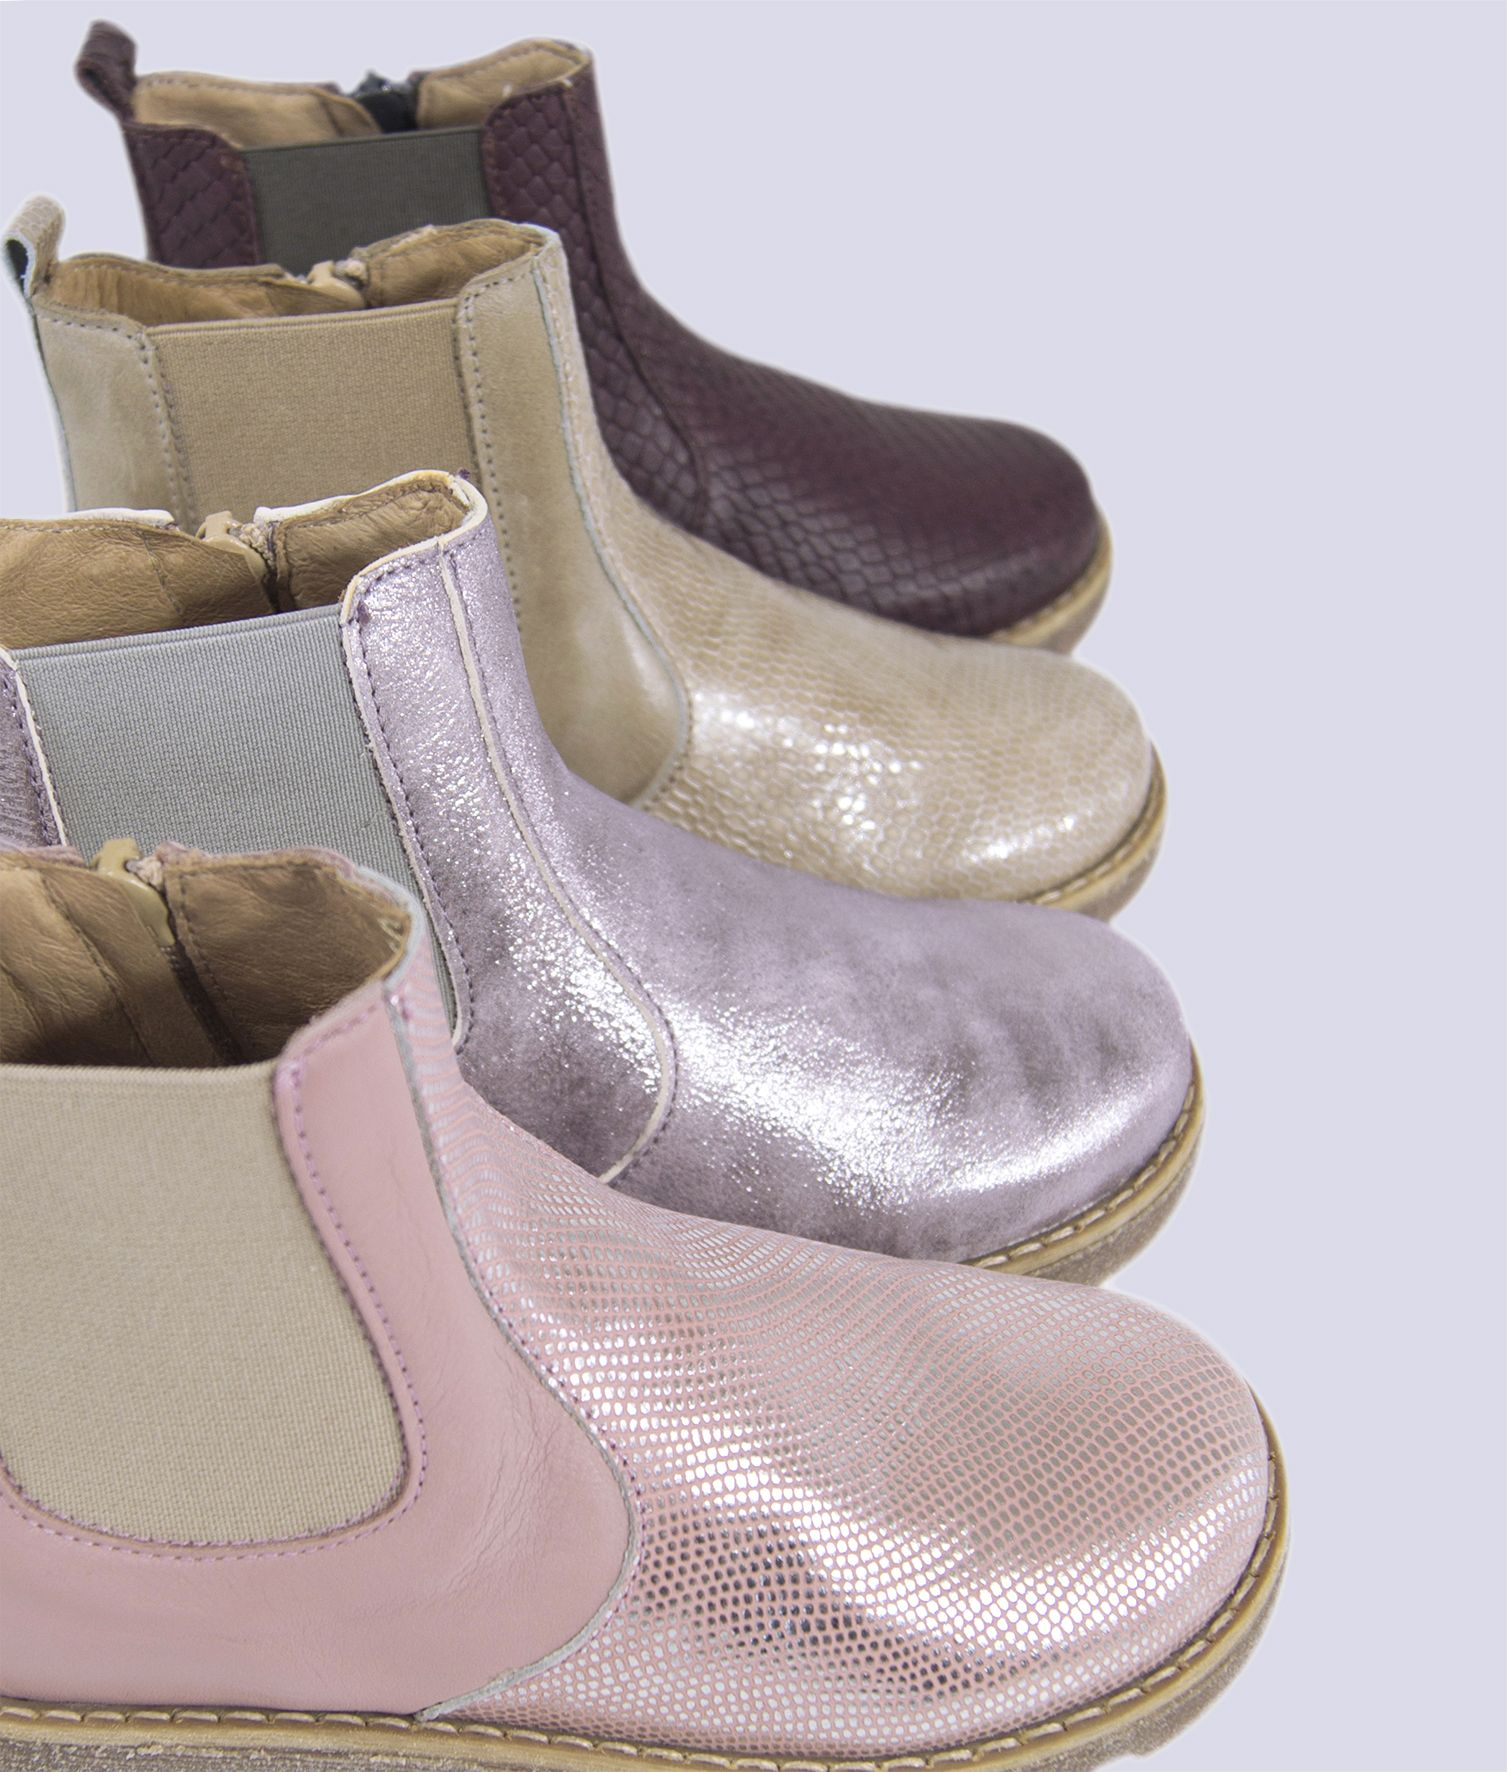 dc6c16b62cfd MOVE Spring Summer 2016 - chelsea boots in fantastic new colors!   movebymelton  chelseaboots  kidswear